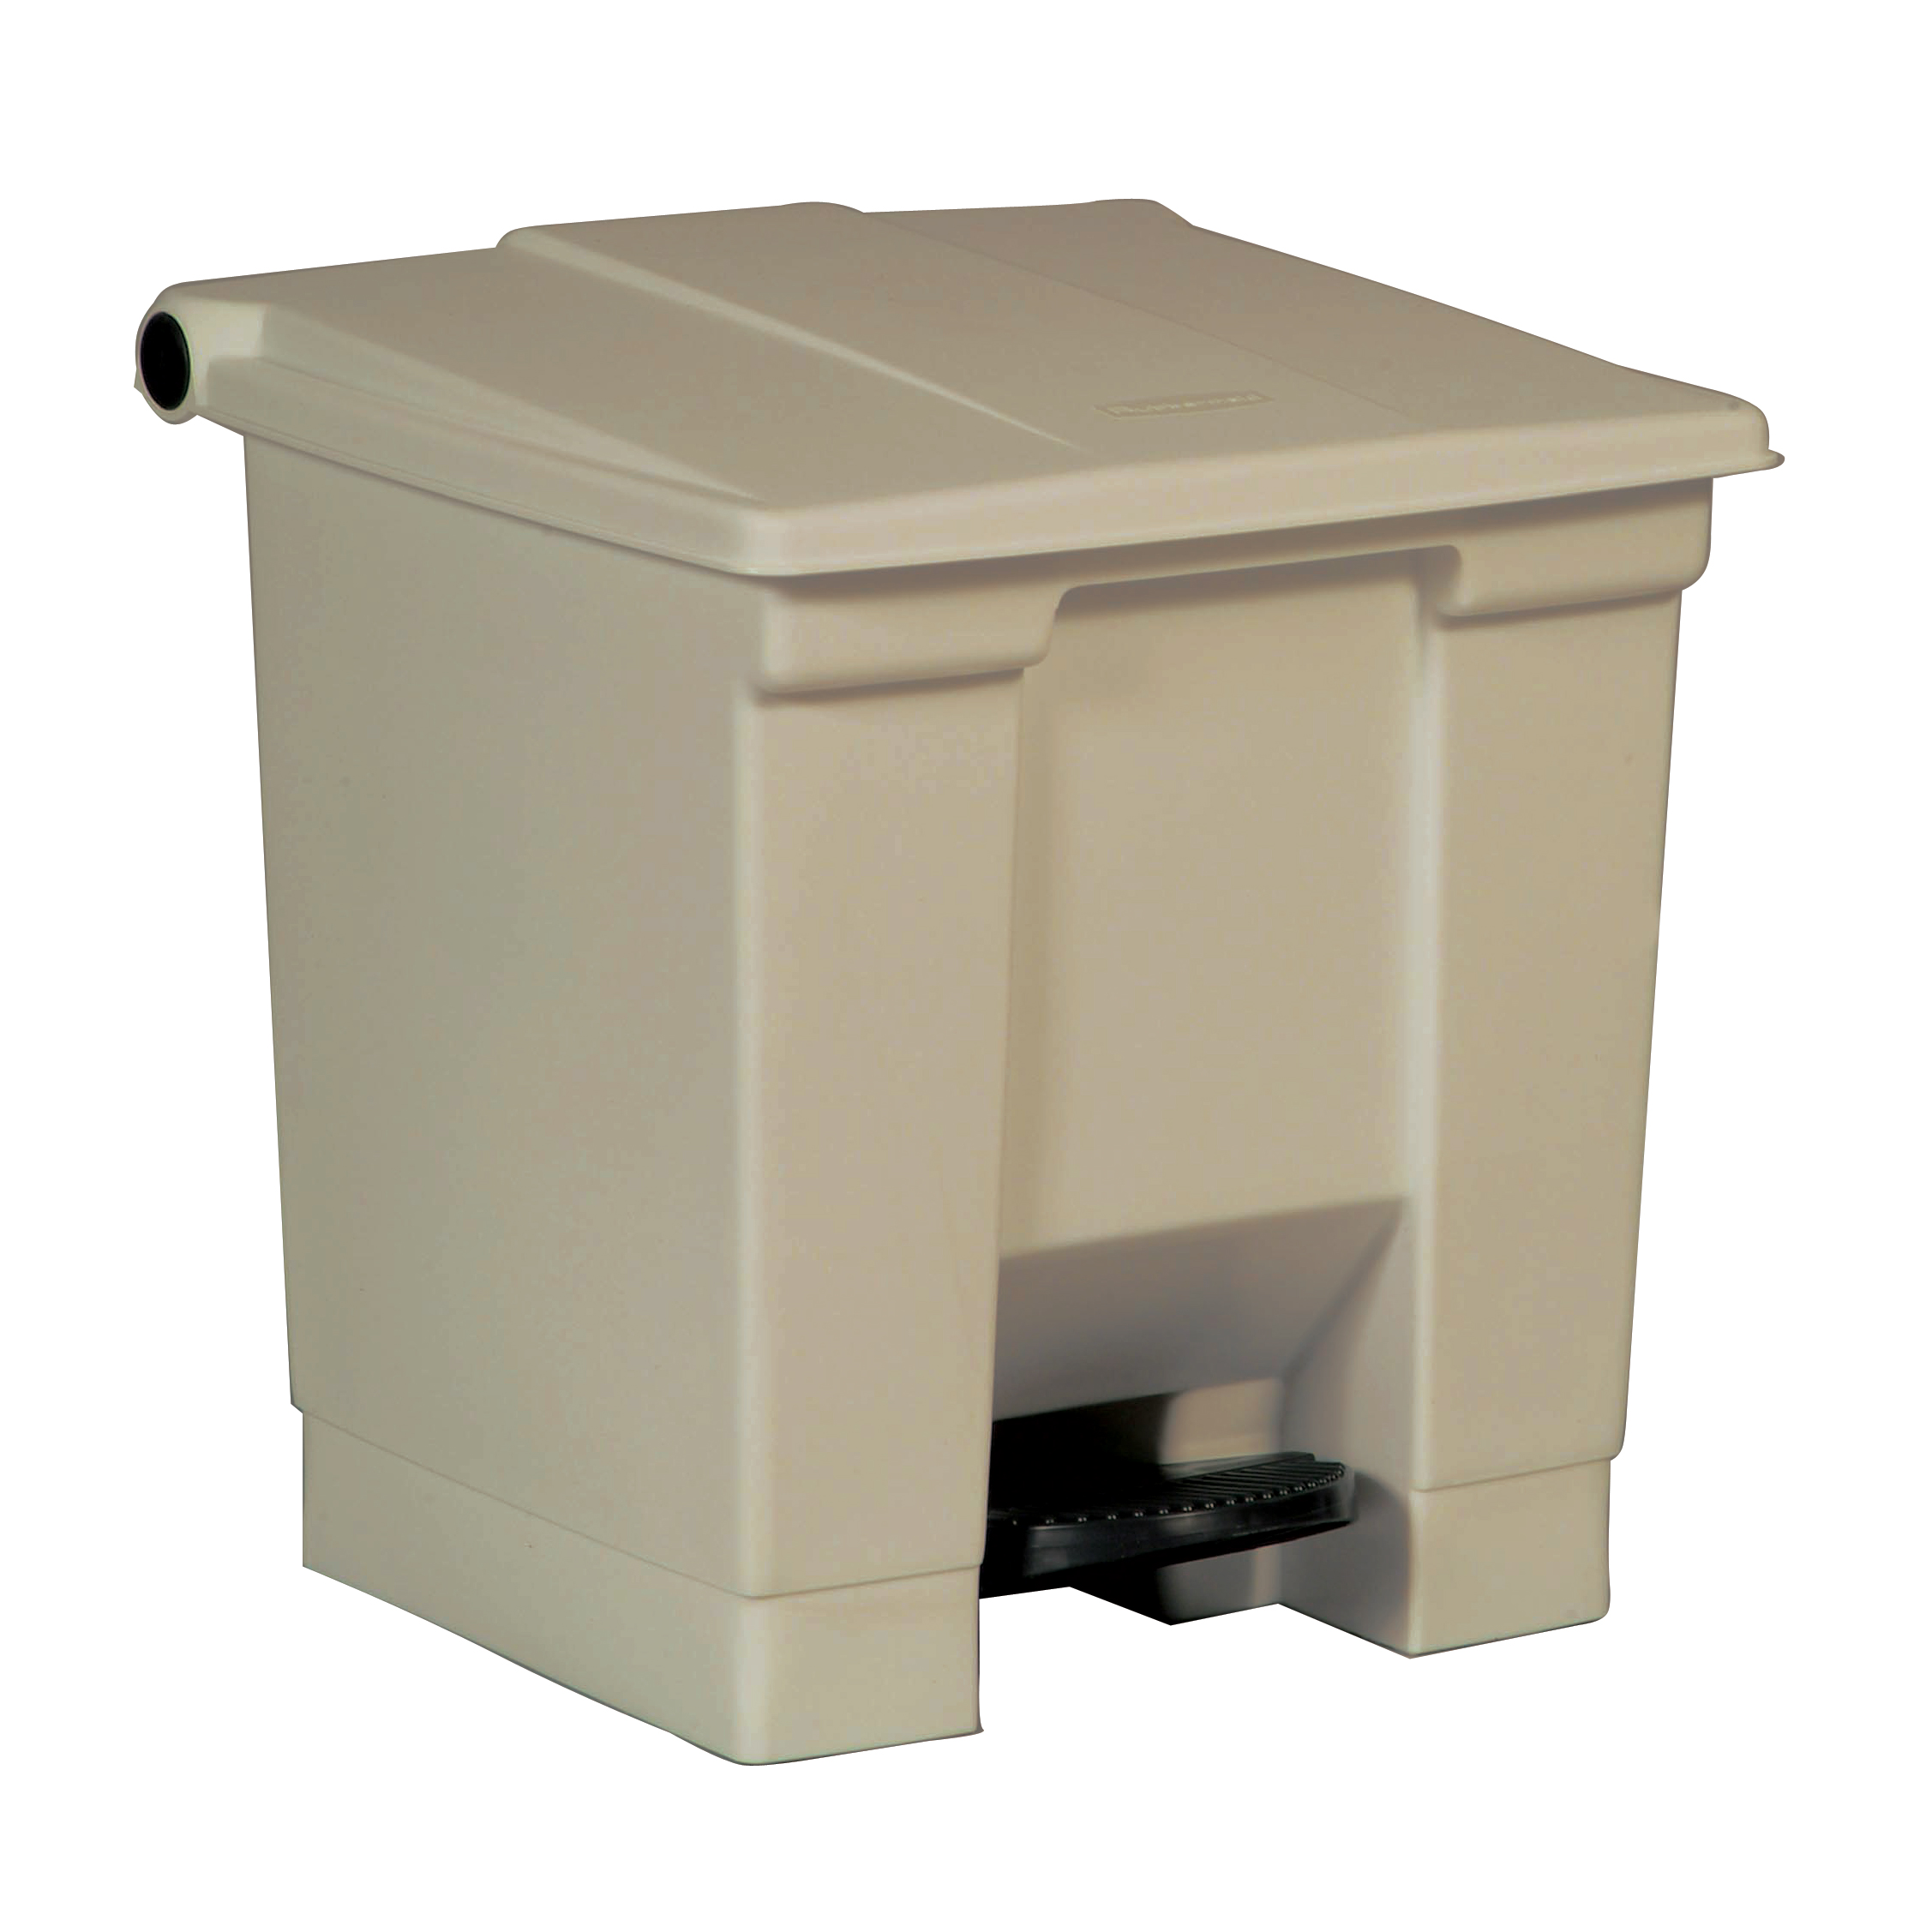 Rubbermaid Commercial Products FG614300BEIG trash receptacle, indoor